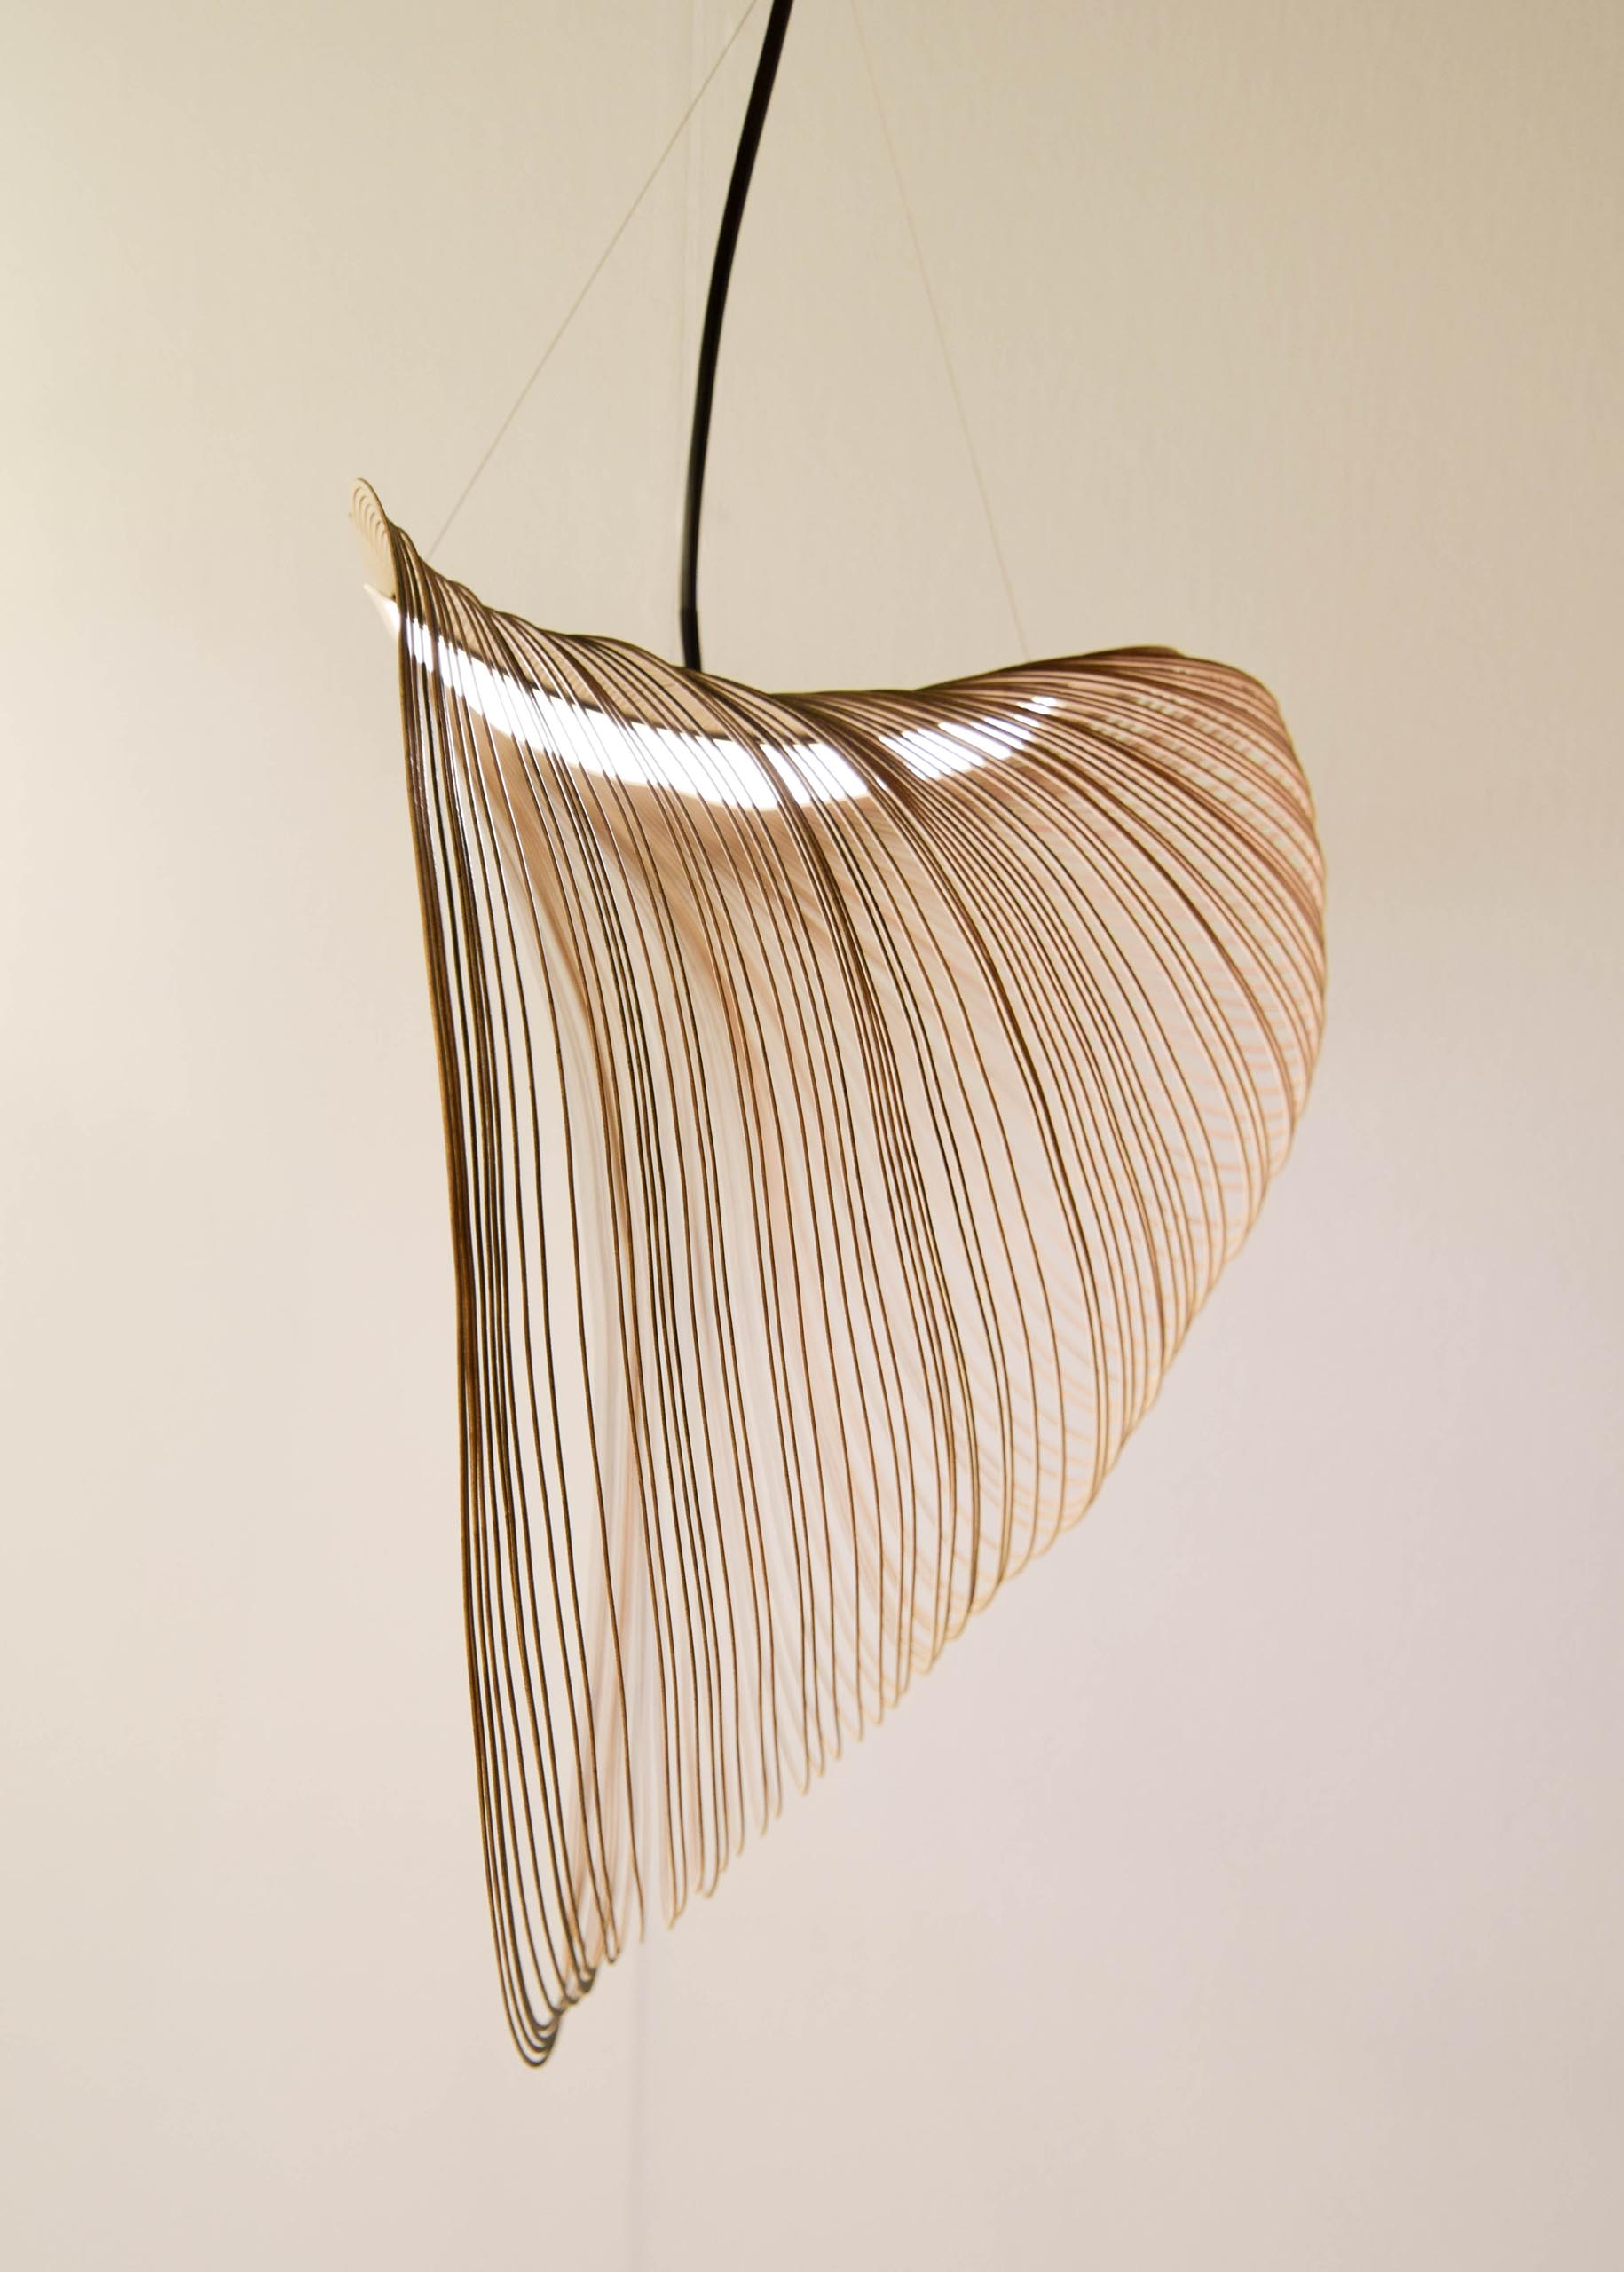 A delicate and sculptural pendant light made from laser cut wood and LEDs.